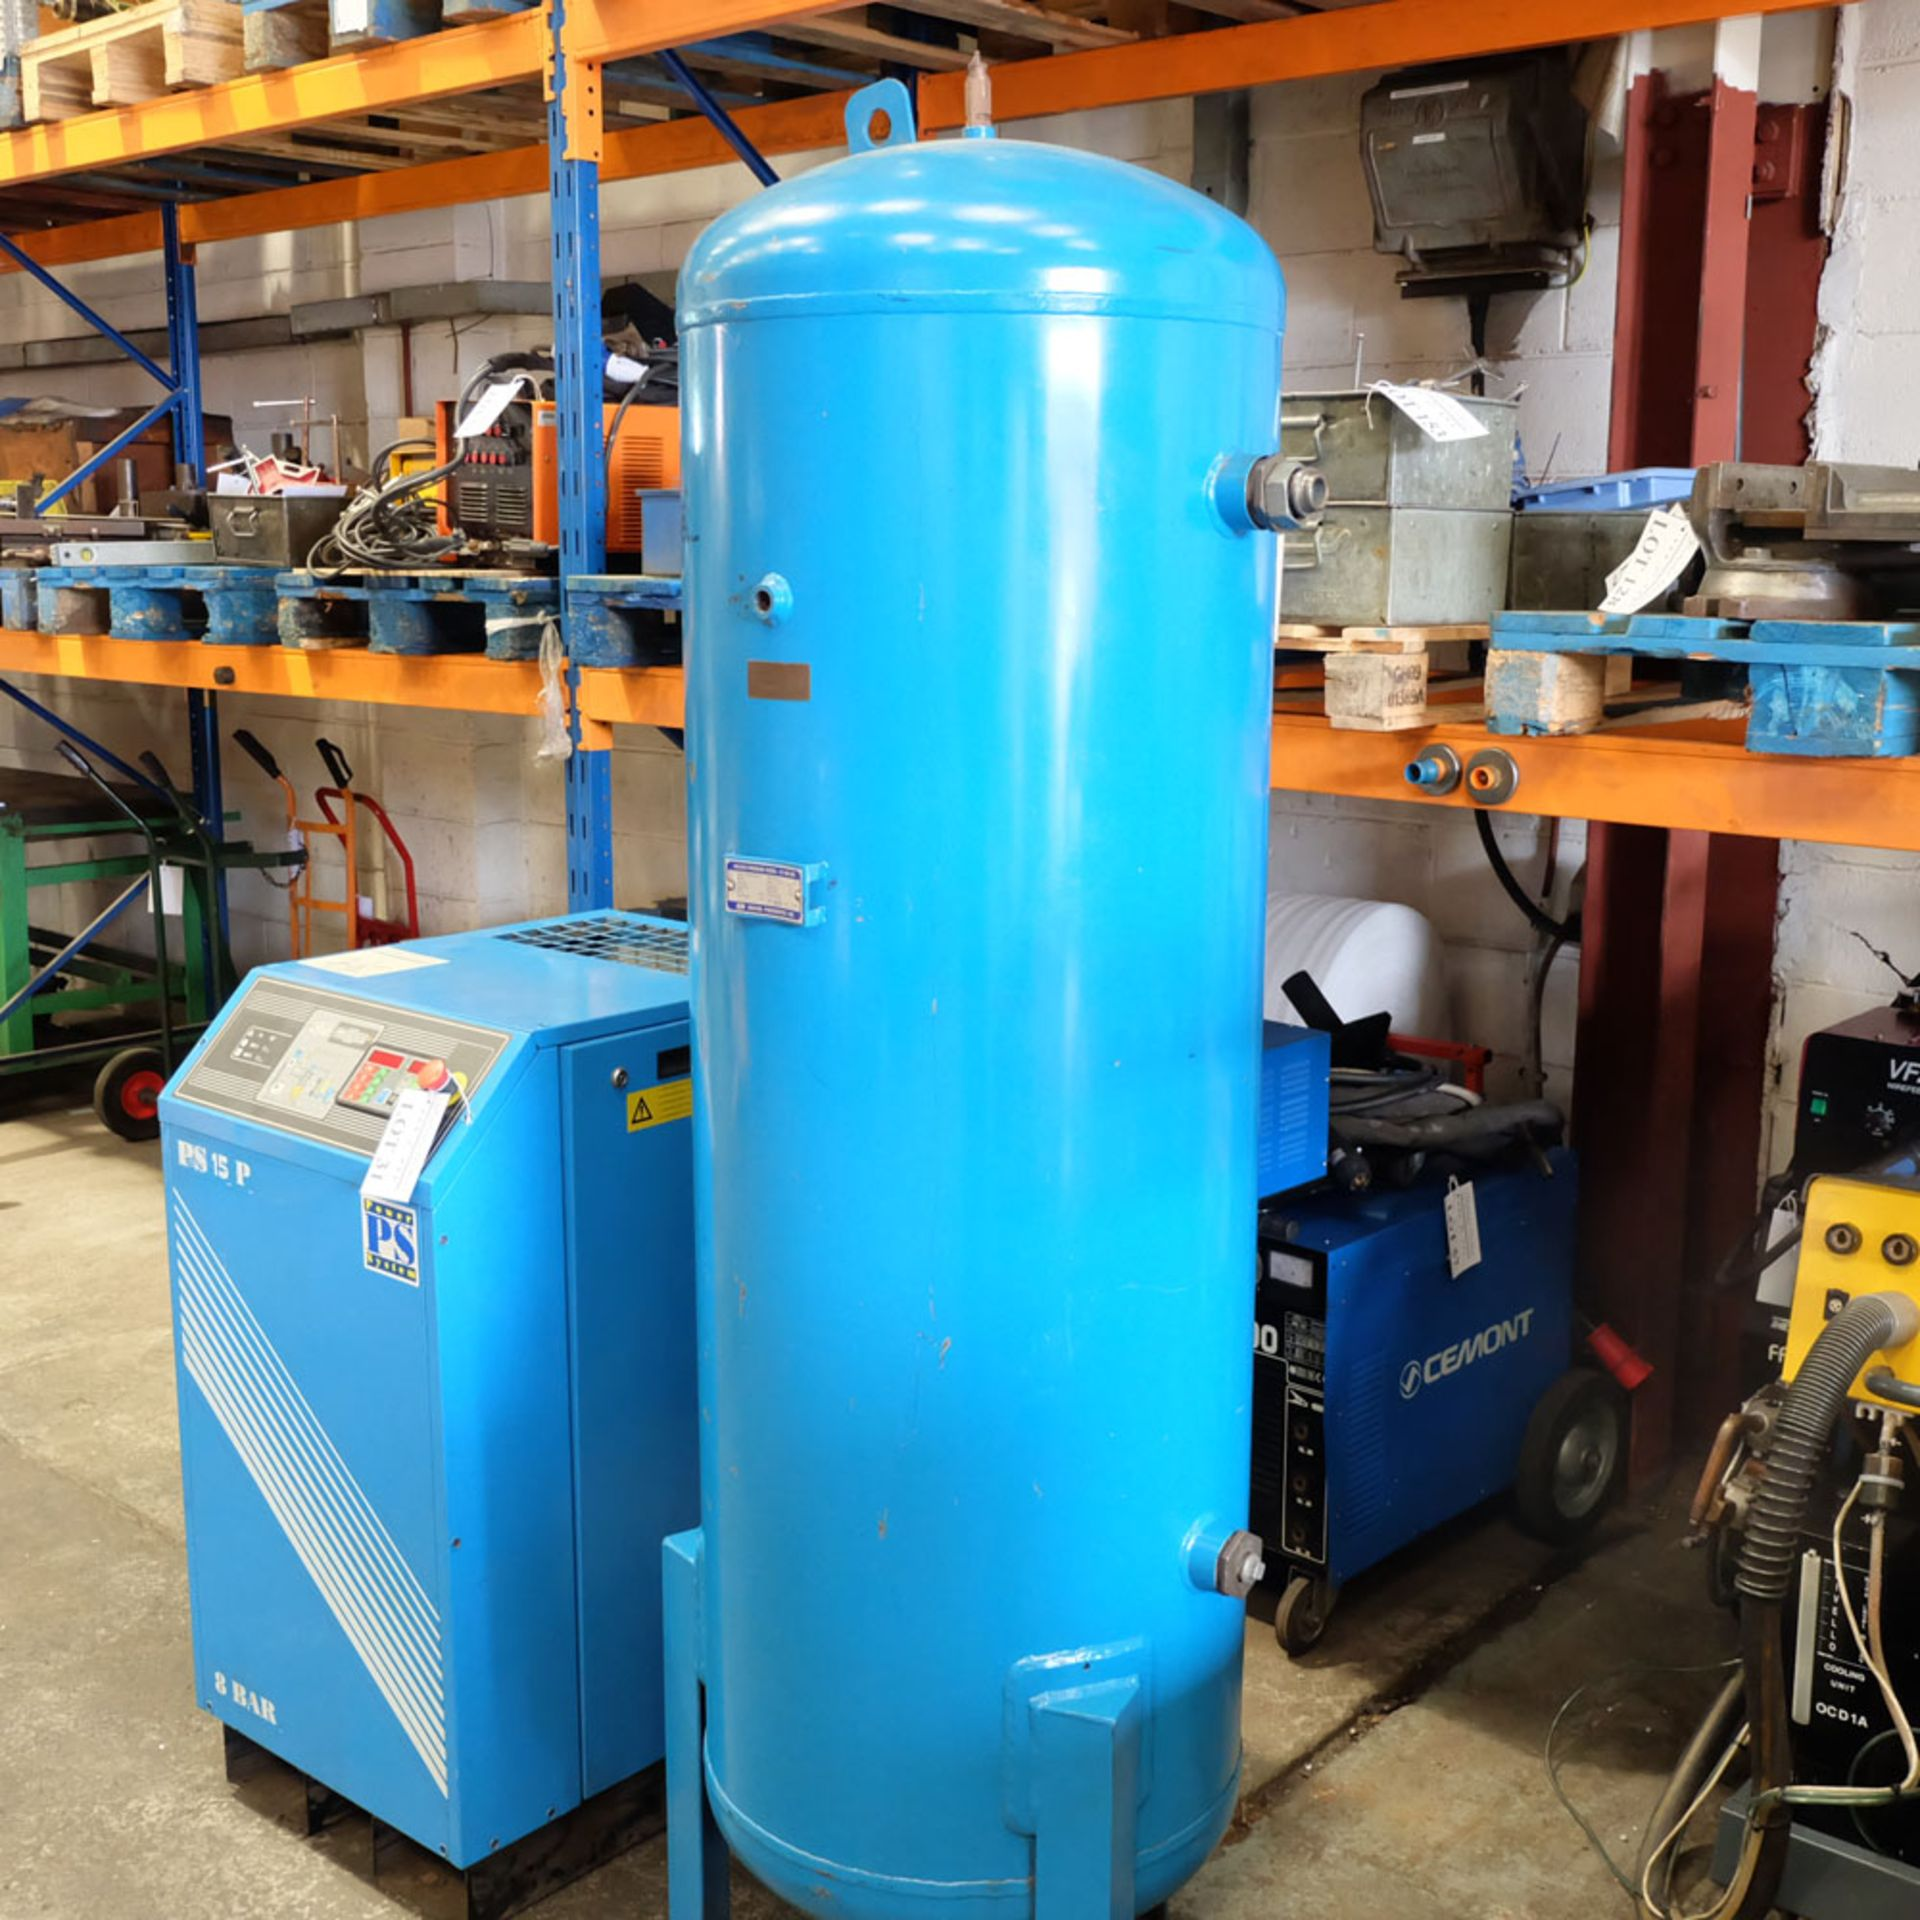 Power Systems PS15P - Rotary Air Compressor with 500L Receiver. Pressure 8 Bar. Capacity 80 cfm. - Image 7 of 8